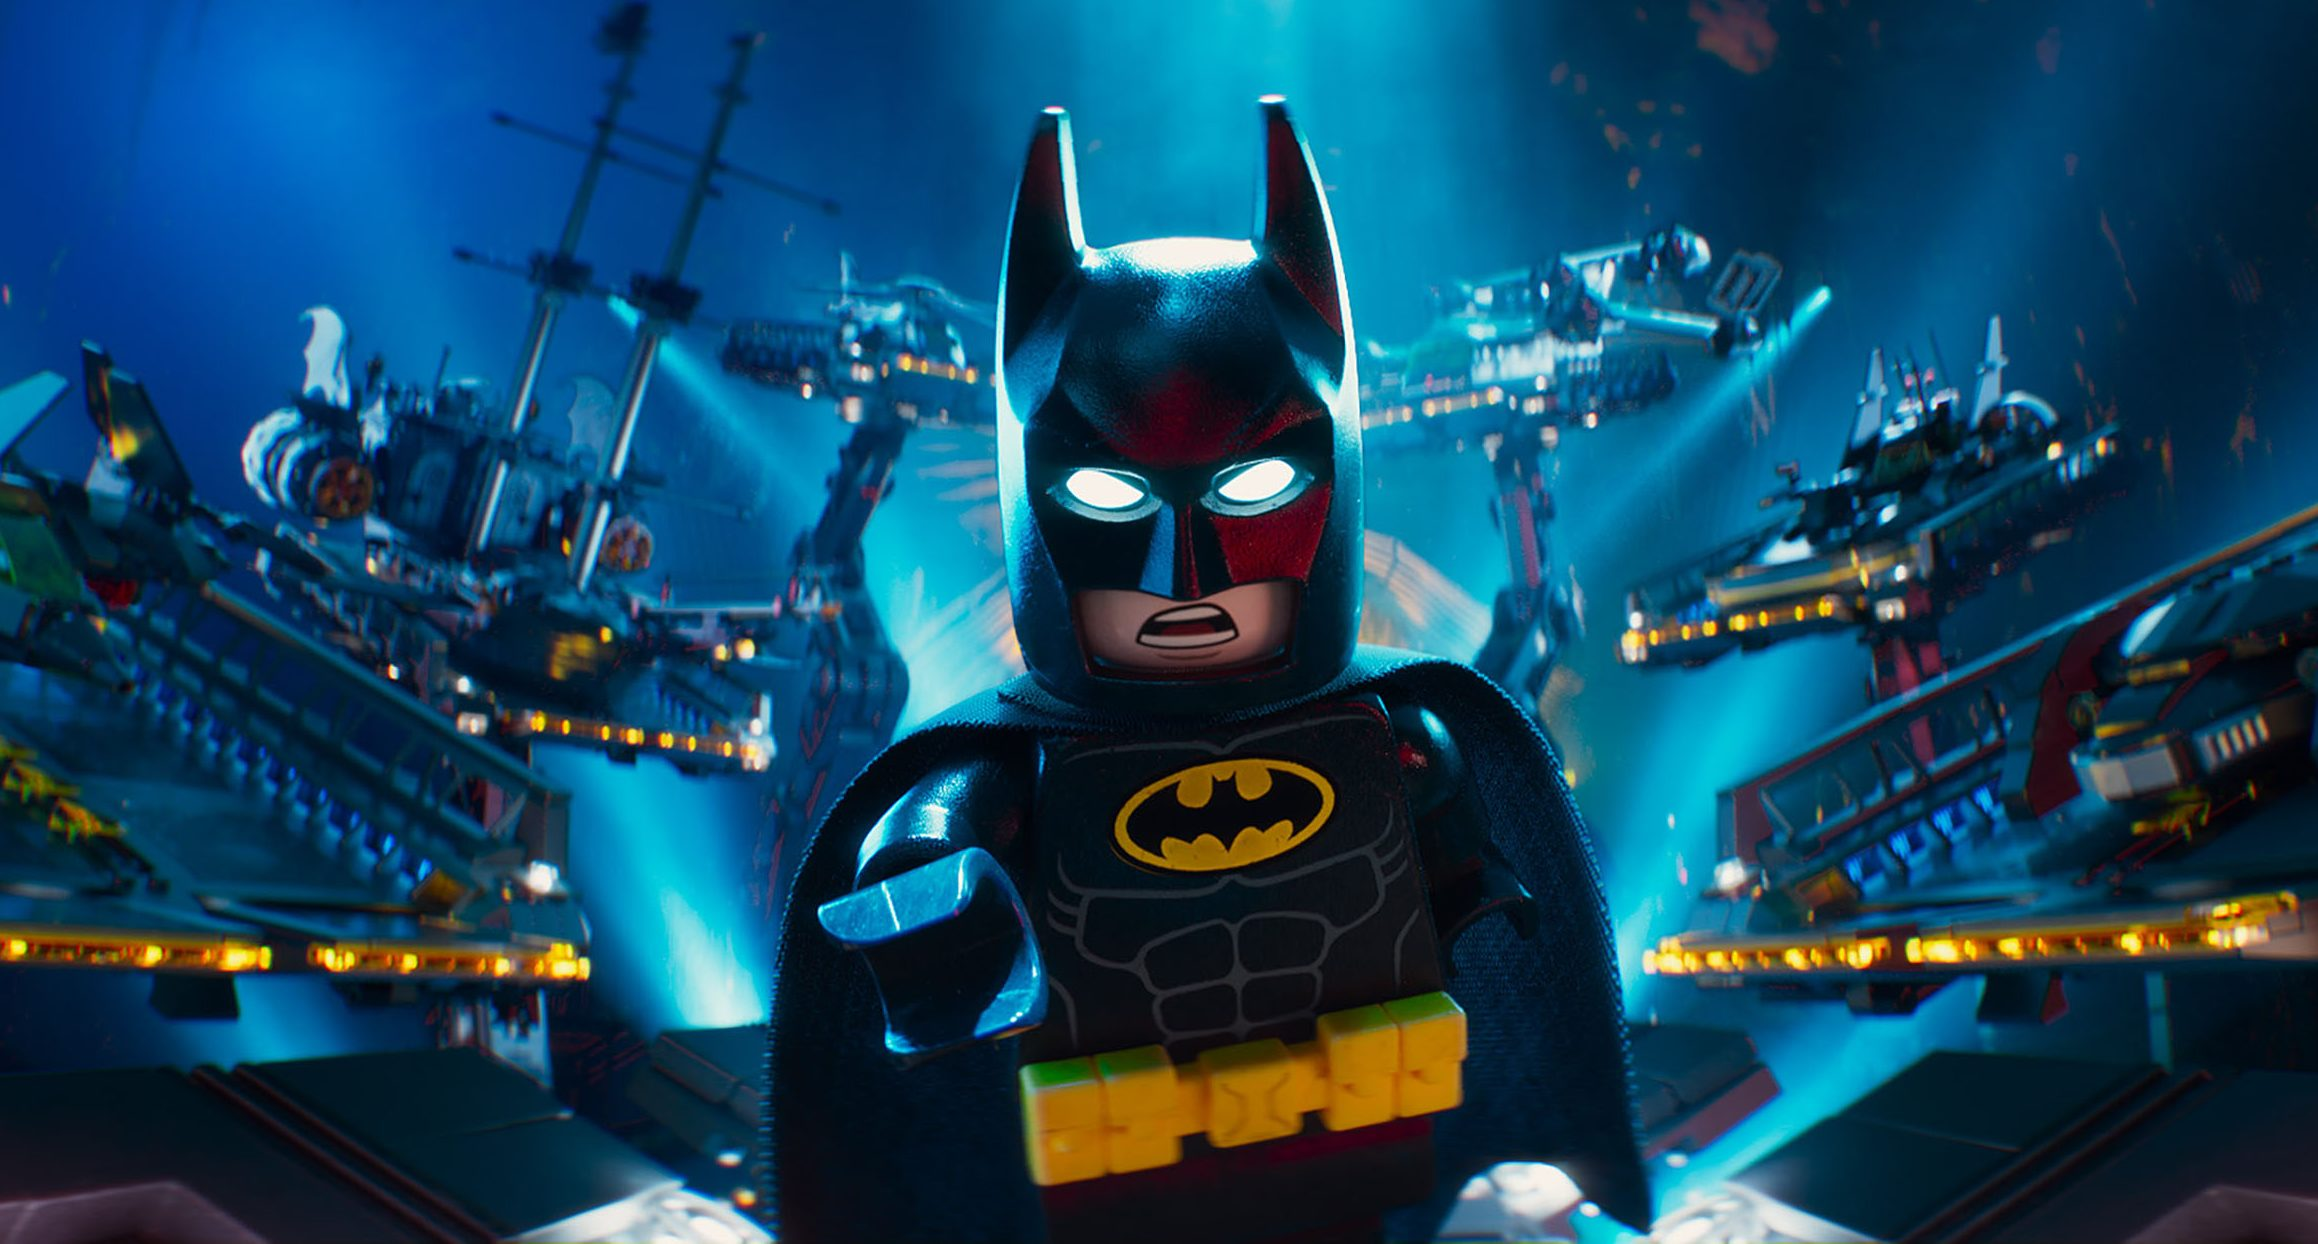 'The LEGO Batman Movie' is fun for both kids and adults.